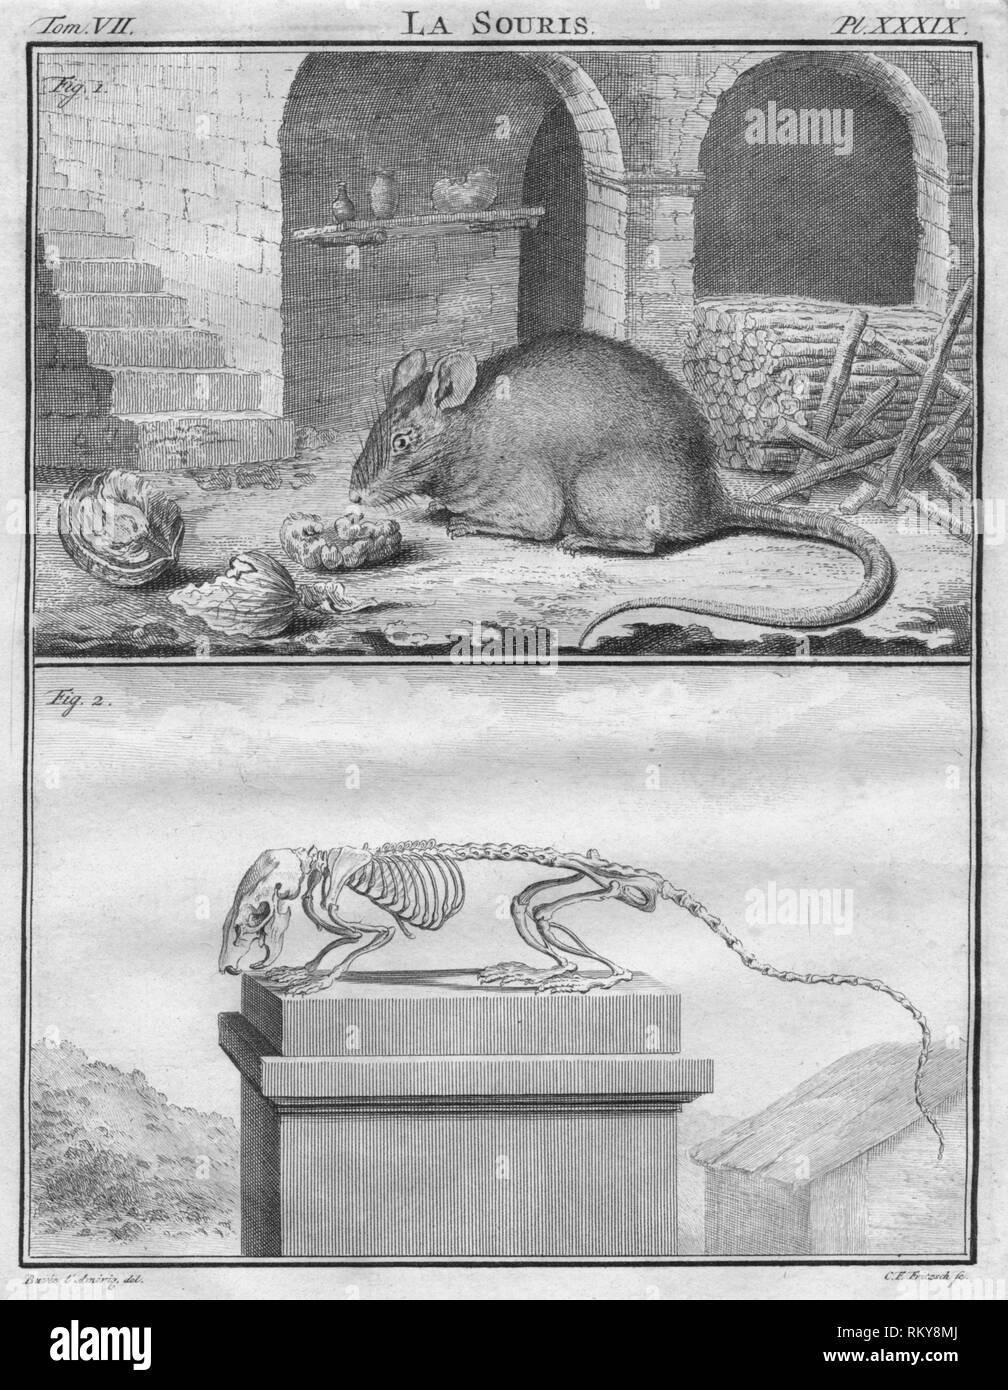 """'La Souris', c1763. The mouse, and below its skeleton. The """"Histoire Naturelle, générale et particulière, avec la description du Cabinet du Roi"""", (Natural History, General and Particular, with a Description of the King's Cabinet) was written 1749-1804 by the Comte de Buffon, and was continued after his death. It was a monumental work in multiple volumes, and covered what was known of the 'natural sciences' at the time, including physics, chemistry and technology as well as the natural history of animals. - Stock Image"""